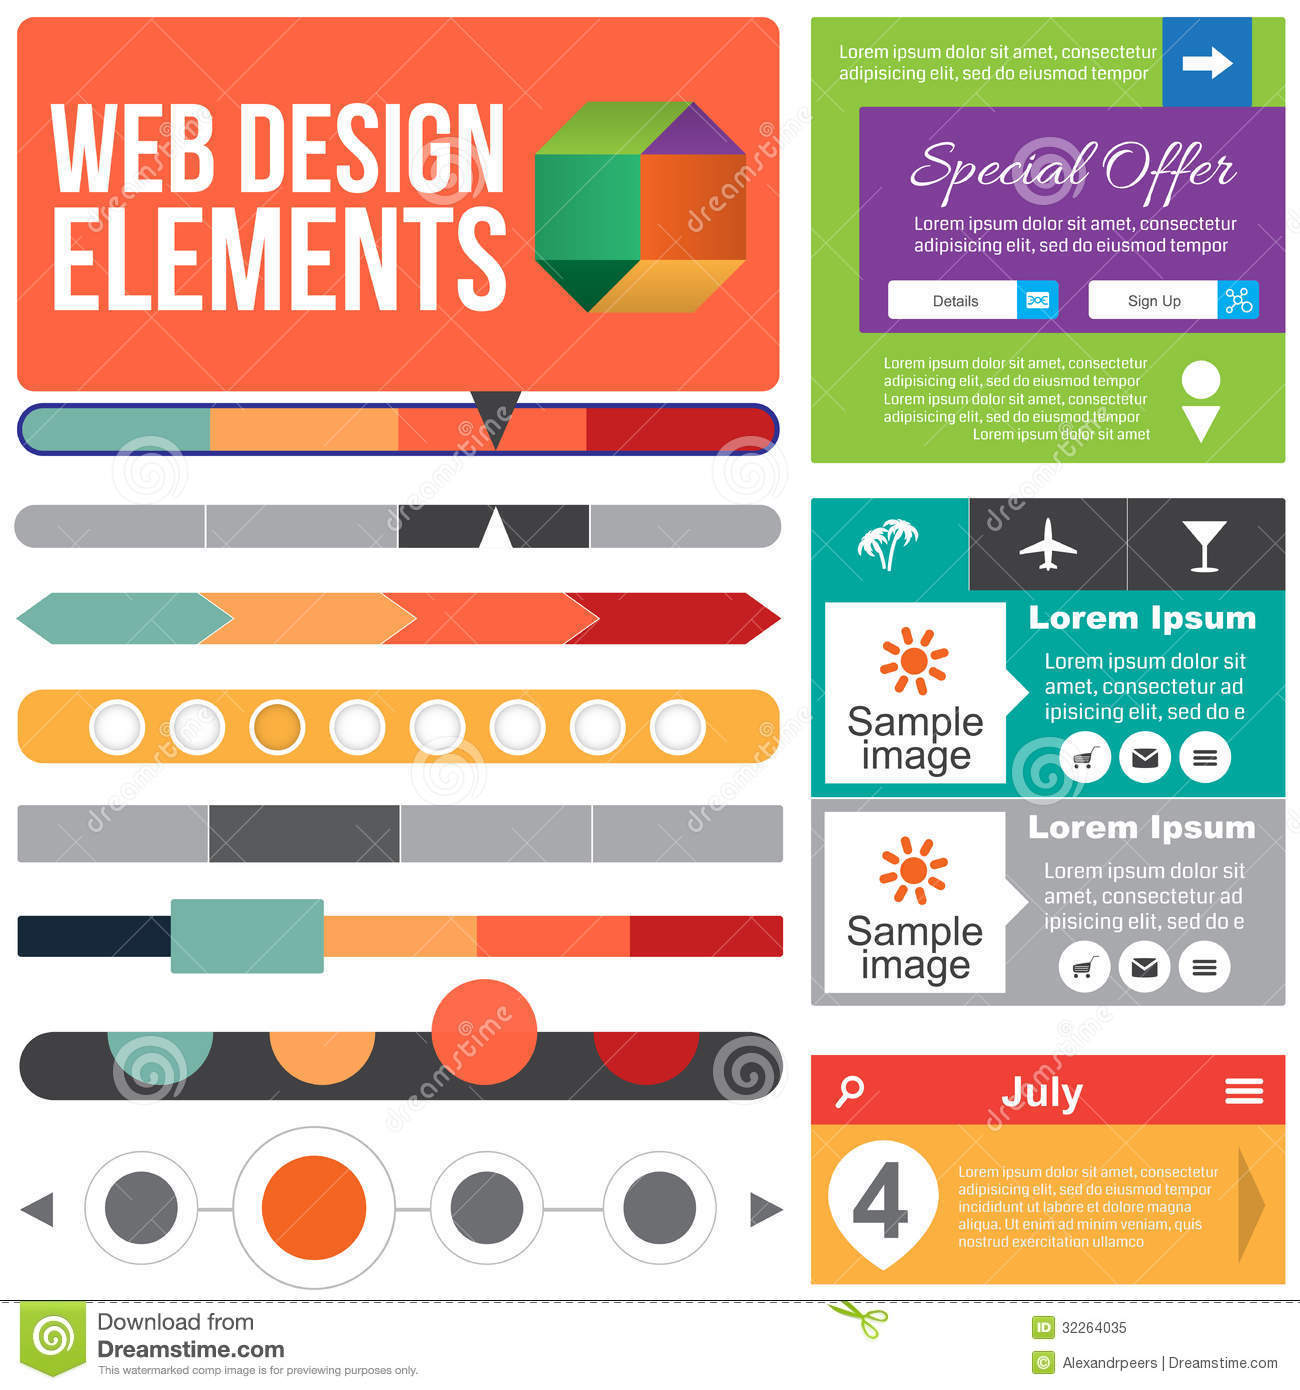 17 Questions About Web Design Elements Images